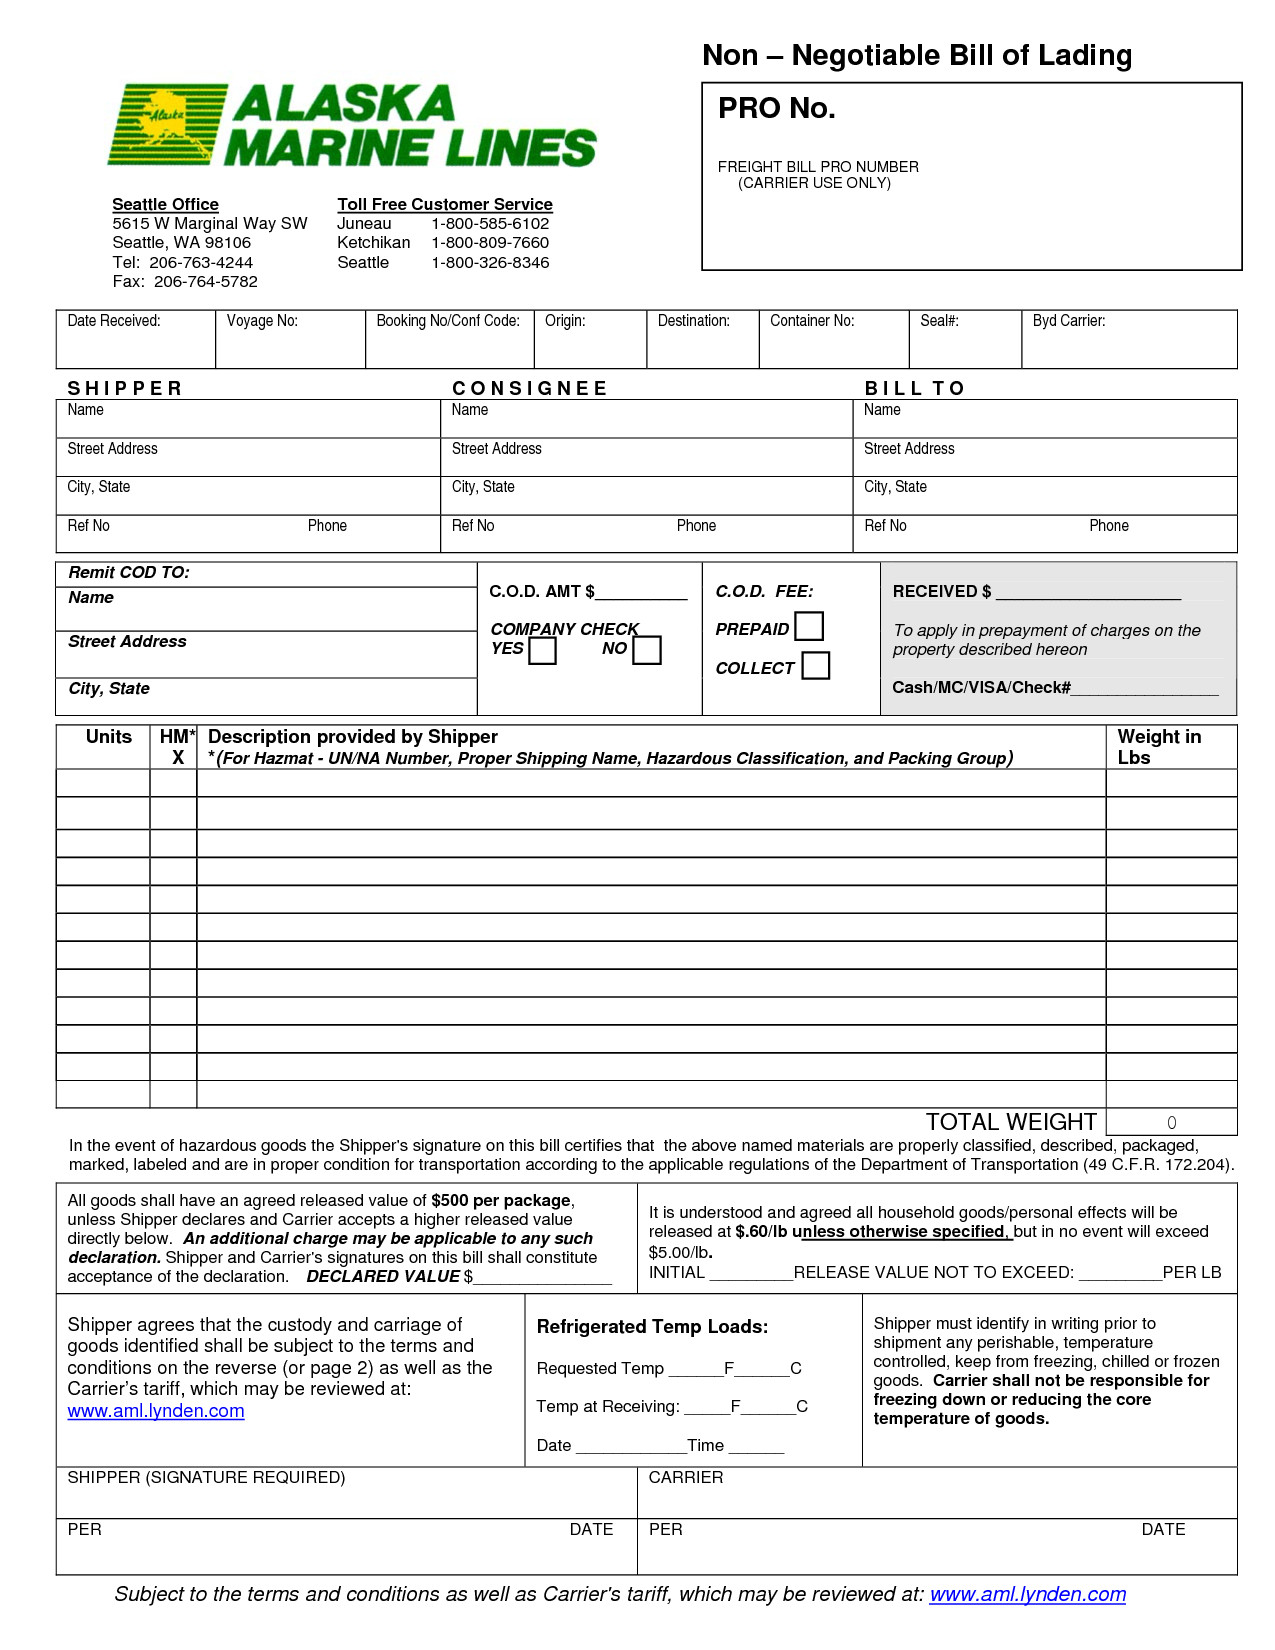 Bill Of Lading Templates 13 Bill Of Lading Templates Excel Pdf formats